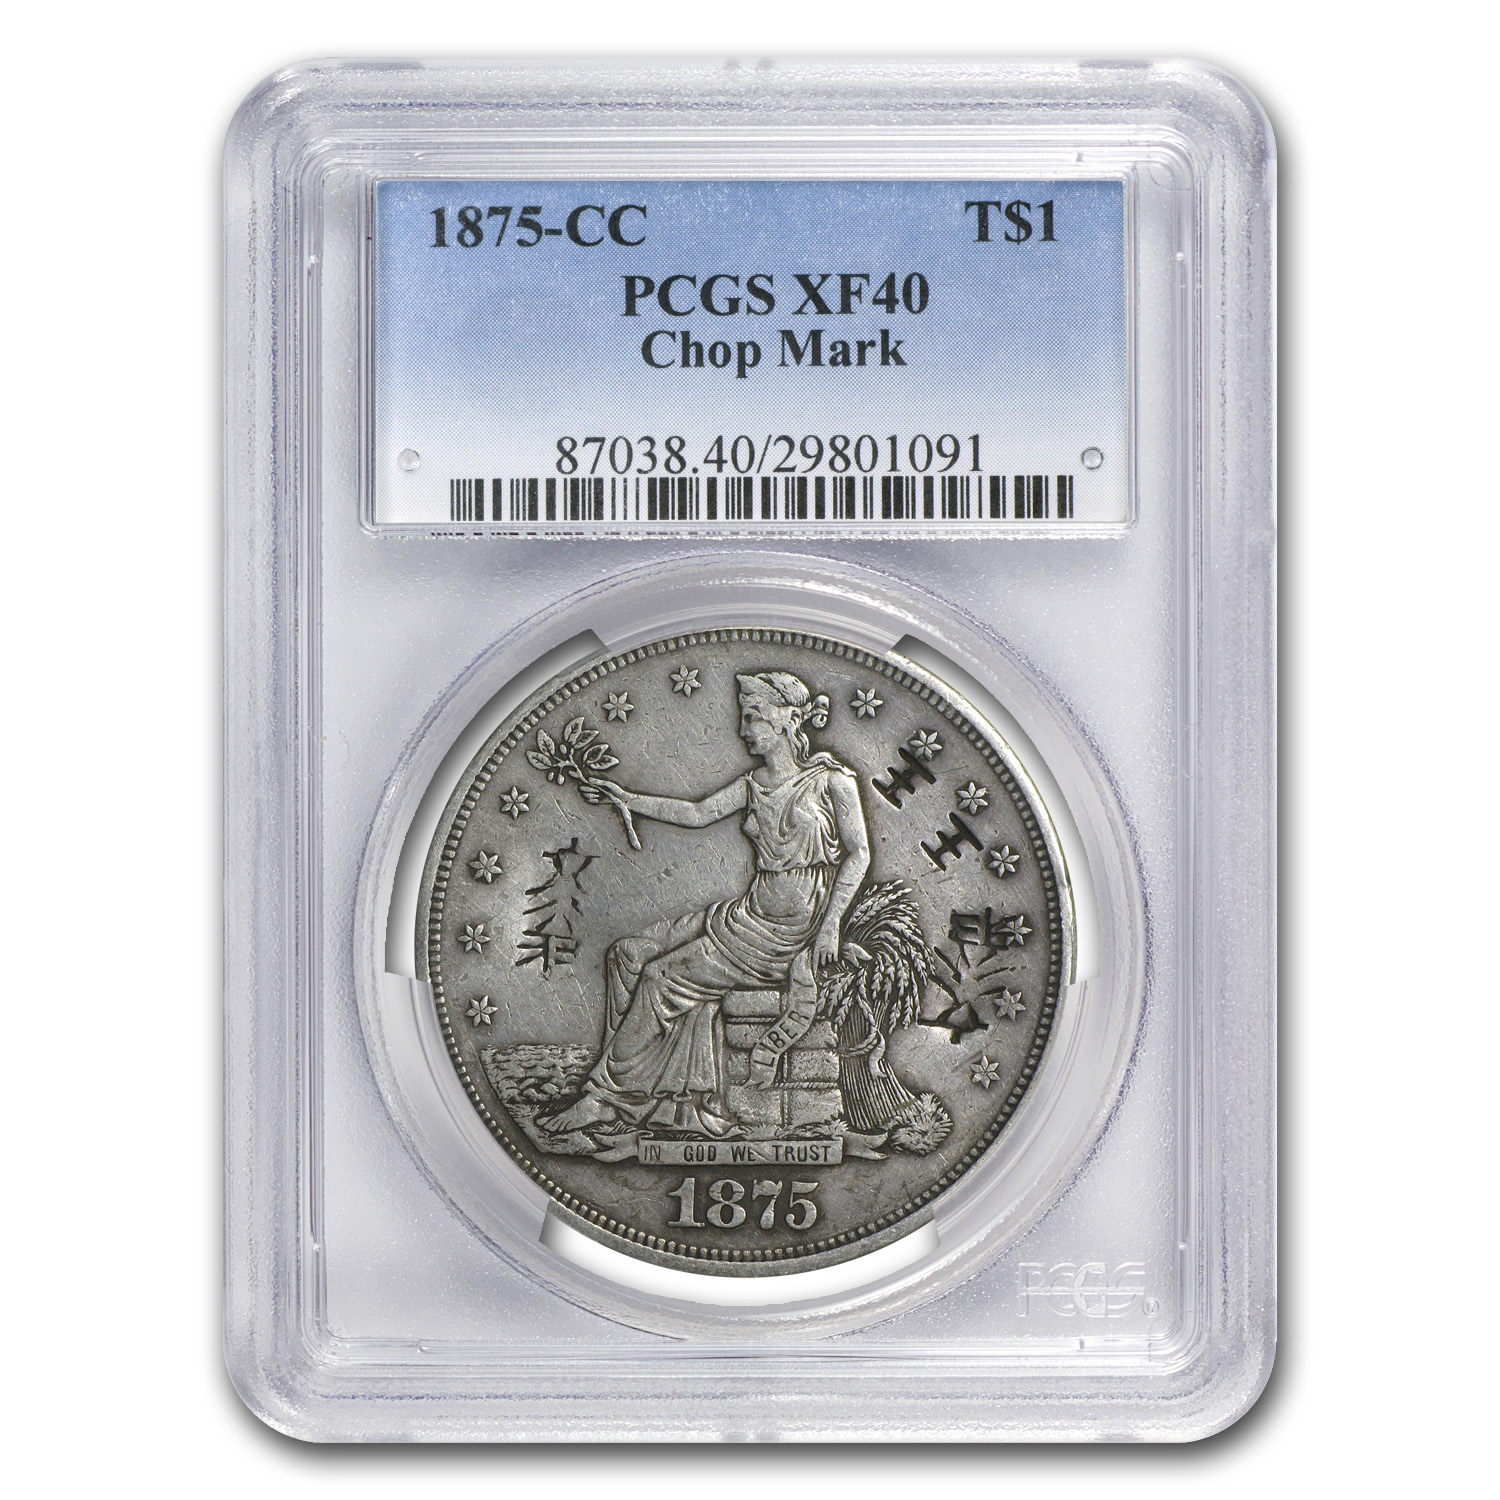 1875-CC Trade Dollar - Extra Fine-40 Chop Mark PCGS